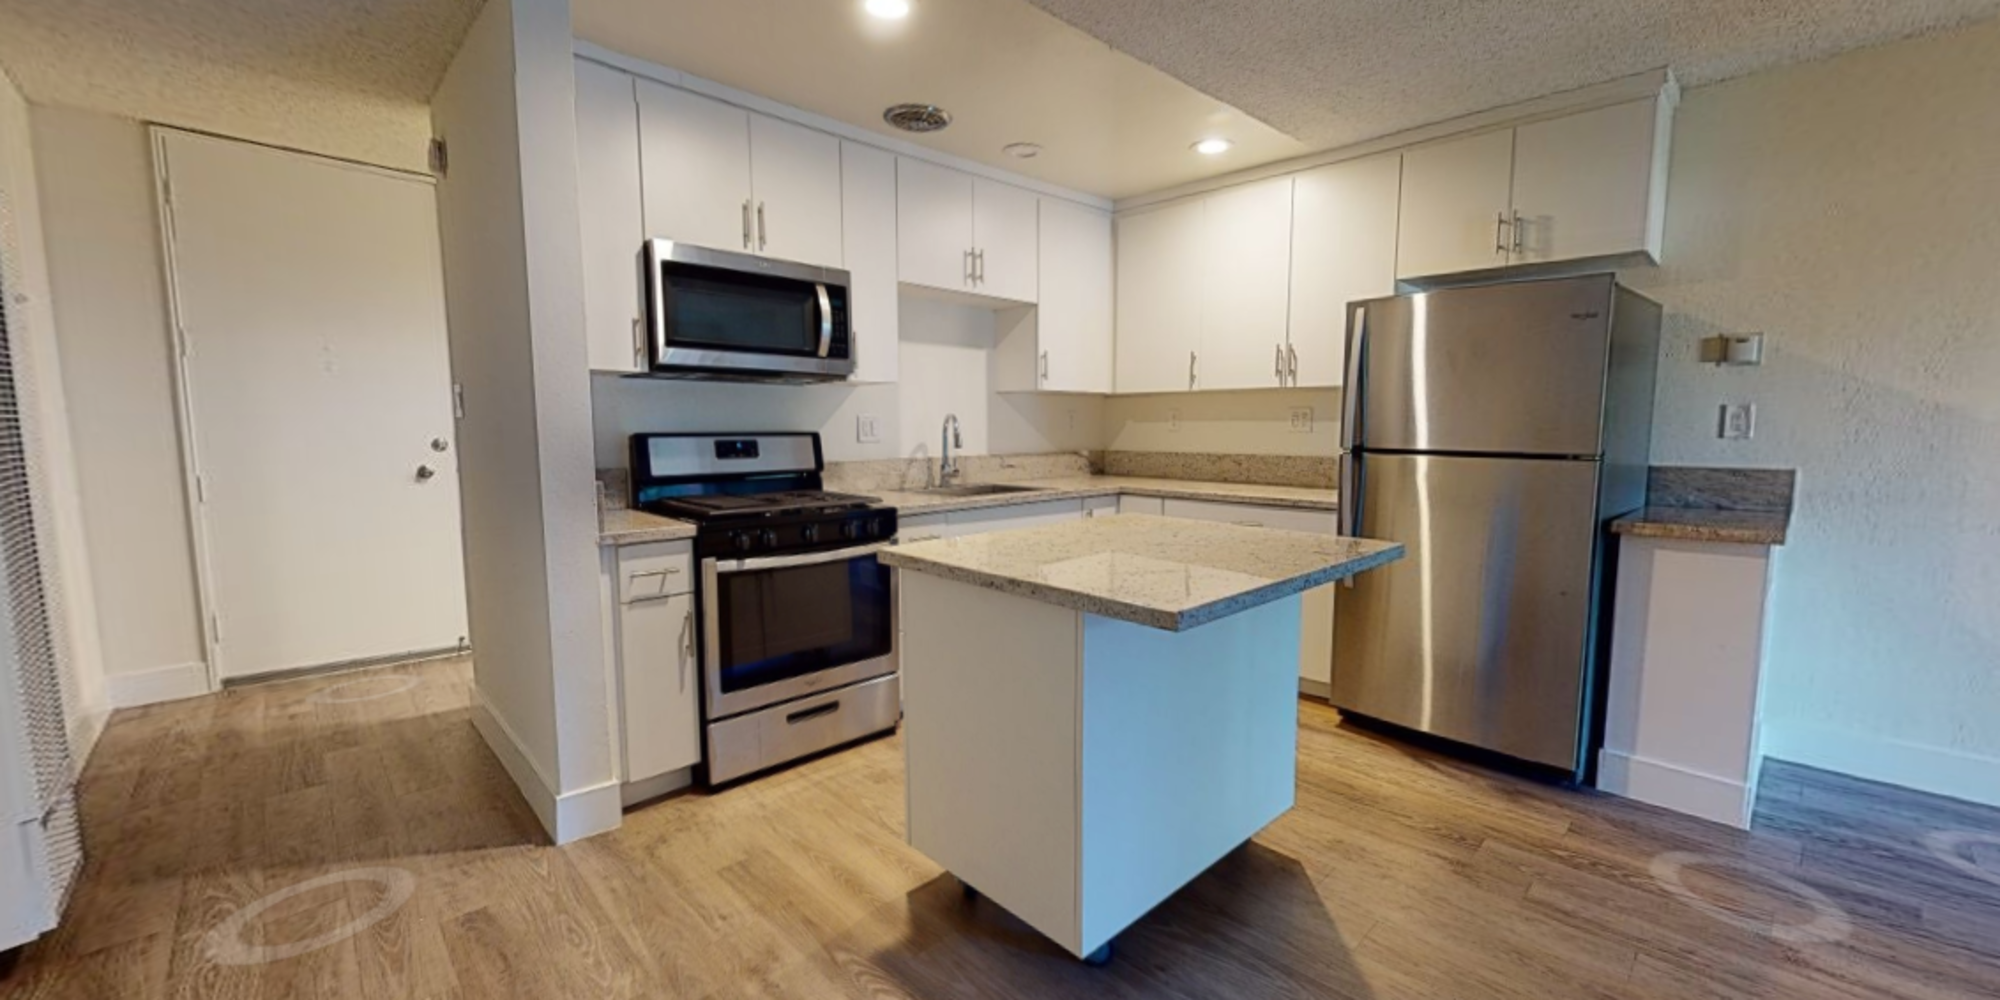 View a virtual tour of our studio apartments at Mediterranean Village in West Hollywood, California